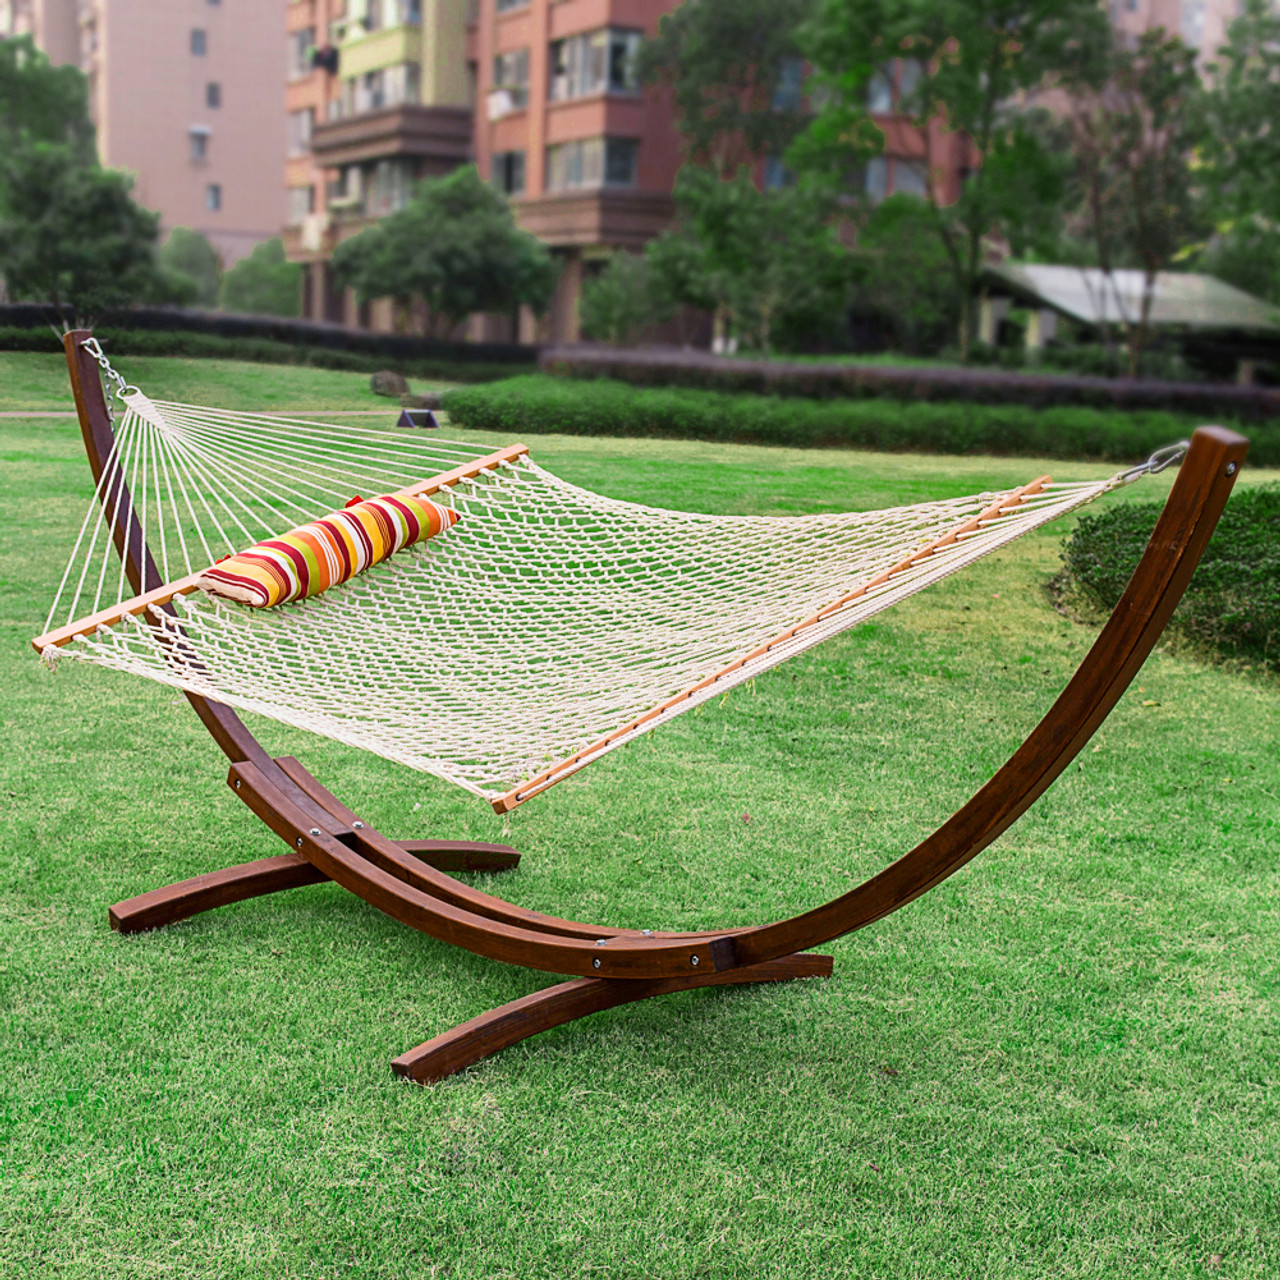 lightweight hammock tr three original outdoor outdoors troikaoutdoors the outdoorstm your that stackable gear for hammocks best industry rest revolutionize troika by point trees in projects will